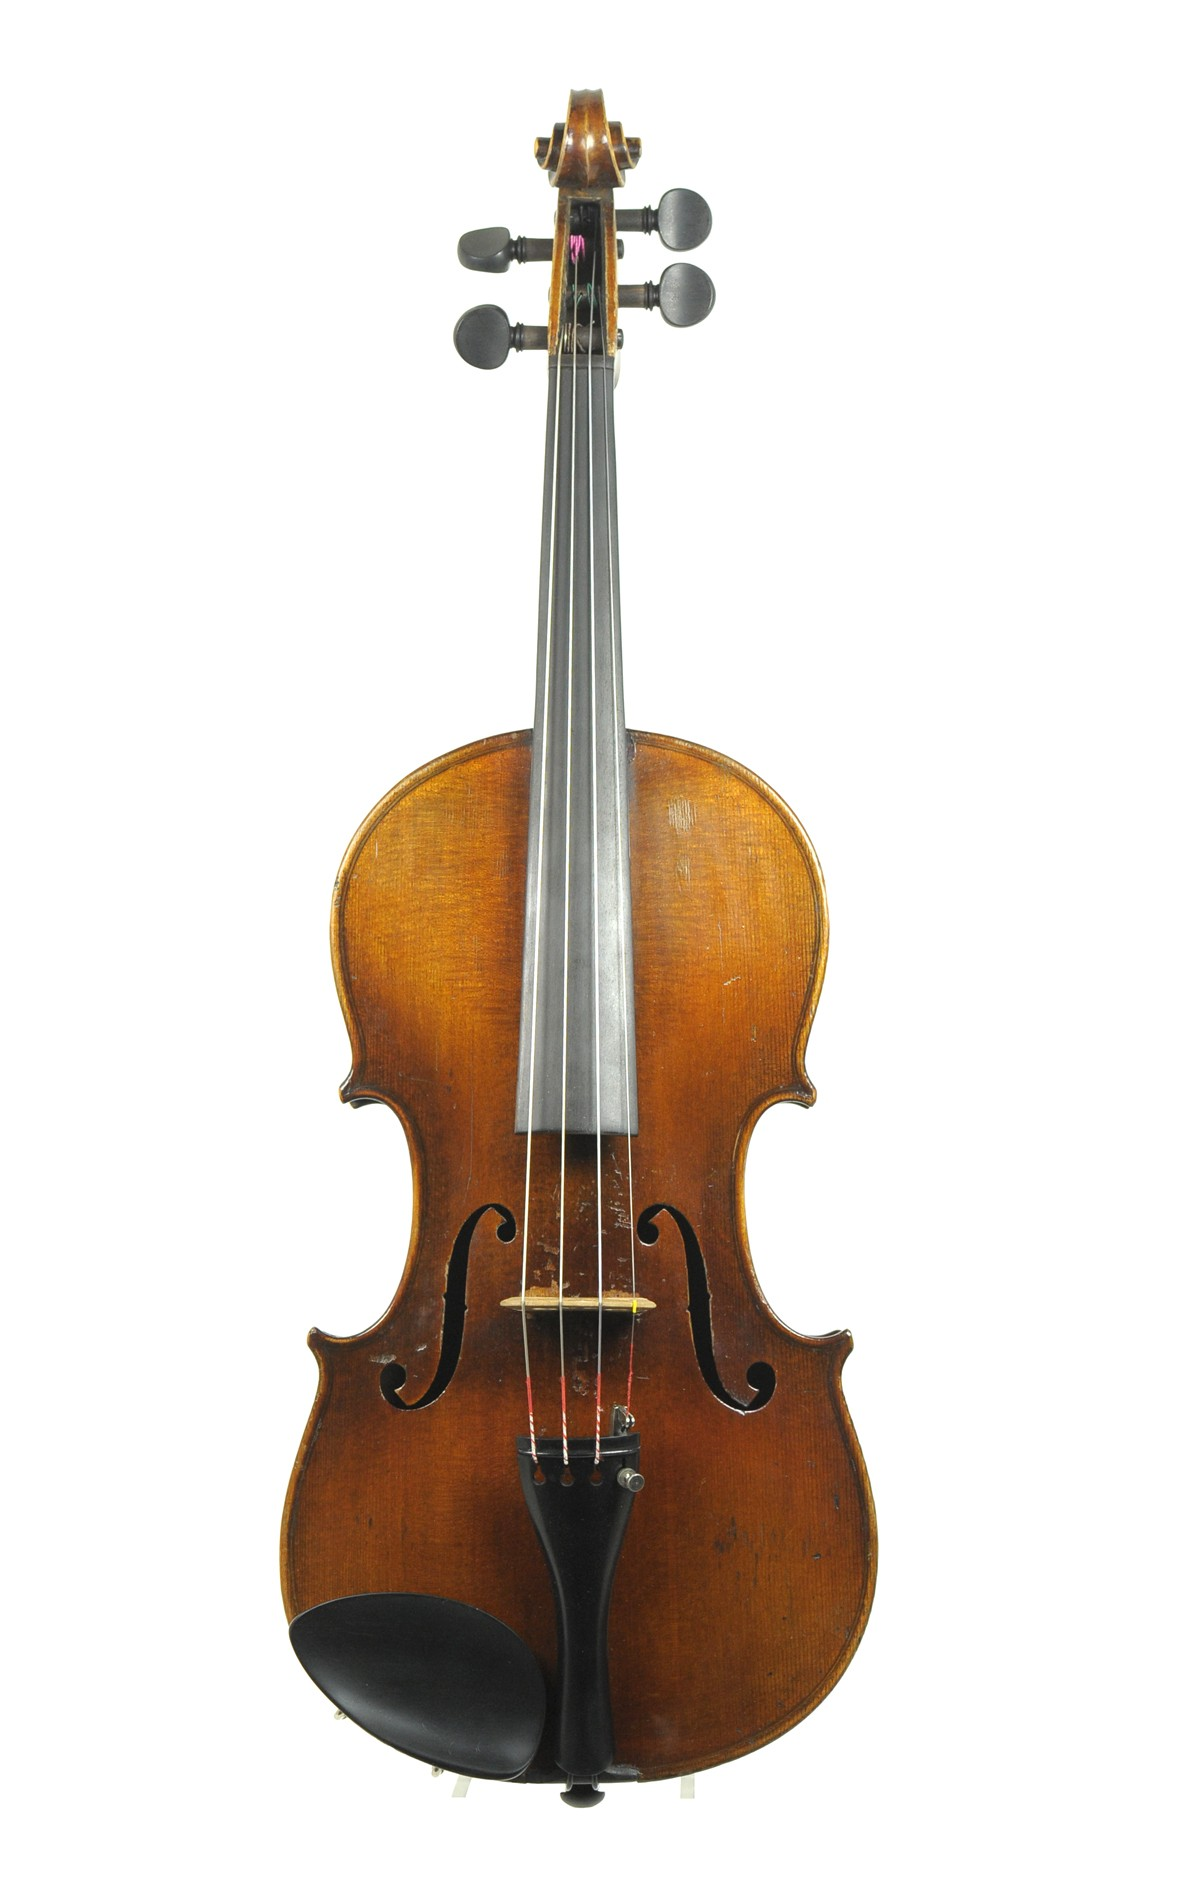 Violin from Saxony, 1920s - top